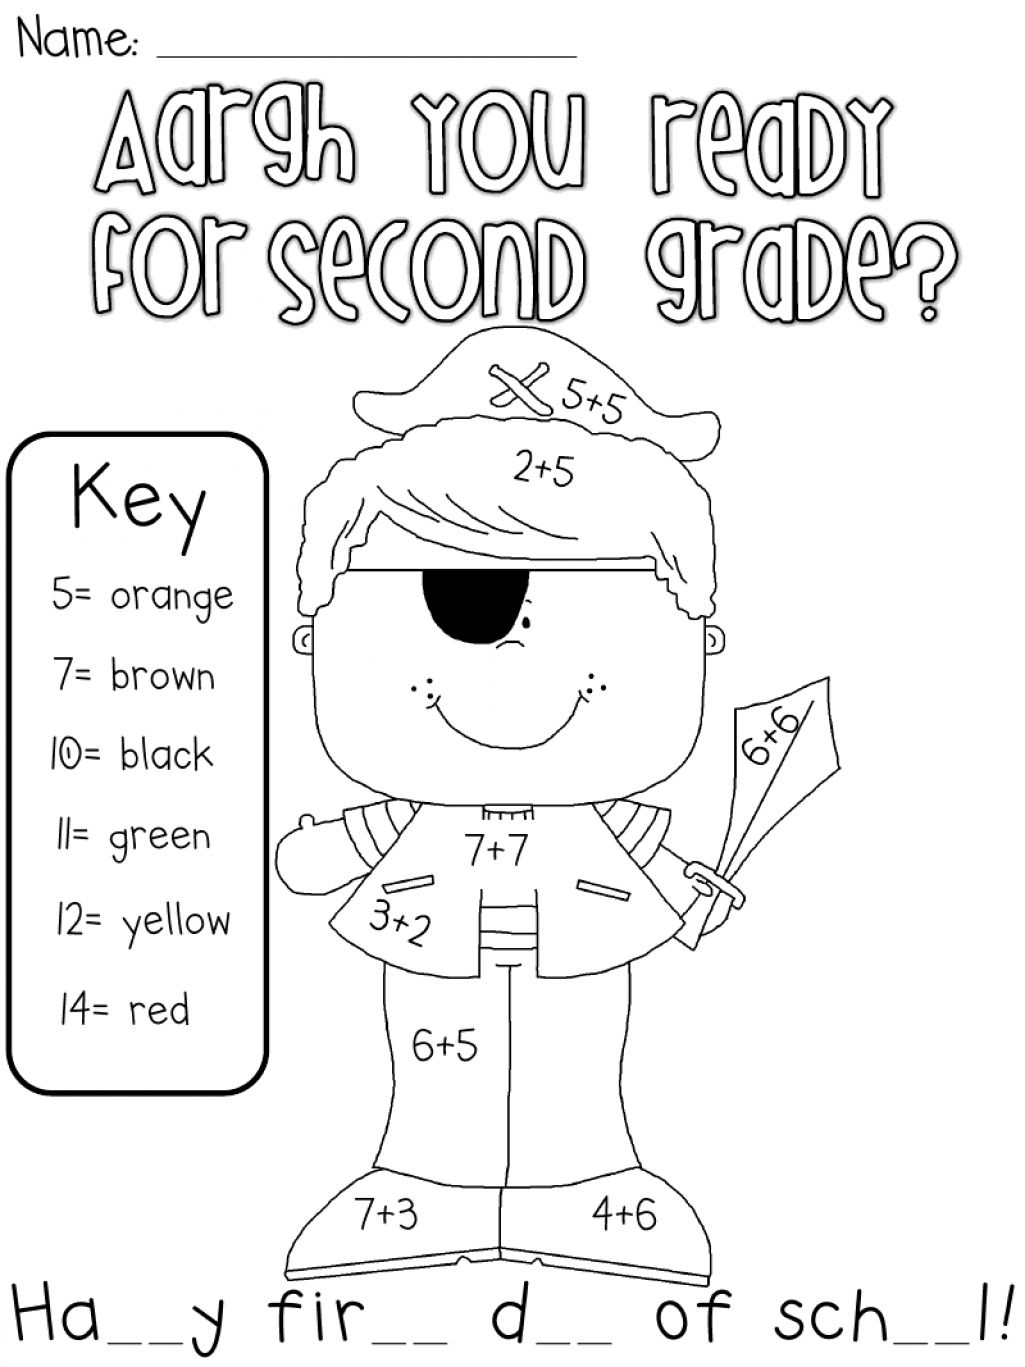 first day coloring pages for second grade | First Day Of School First Day Of School Activities For 2nd ...